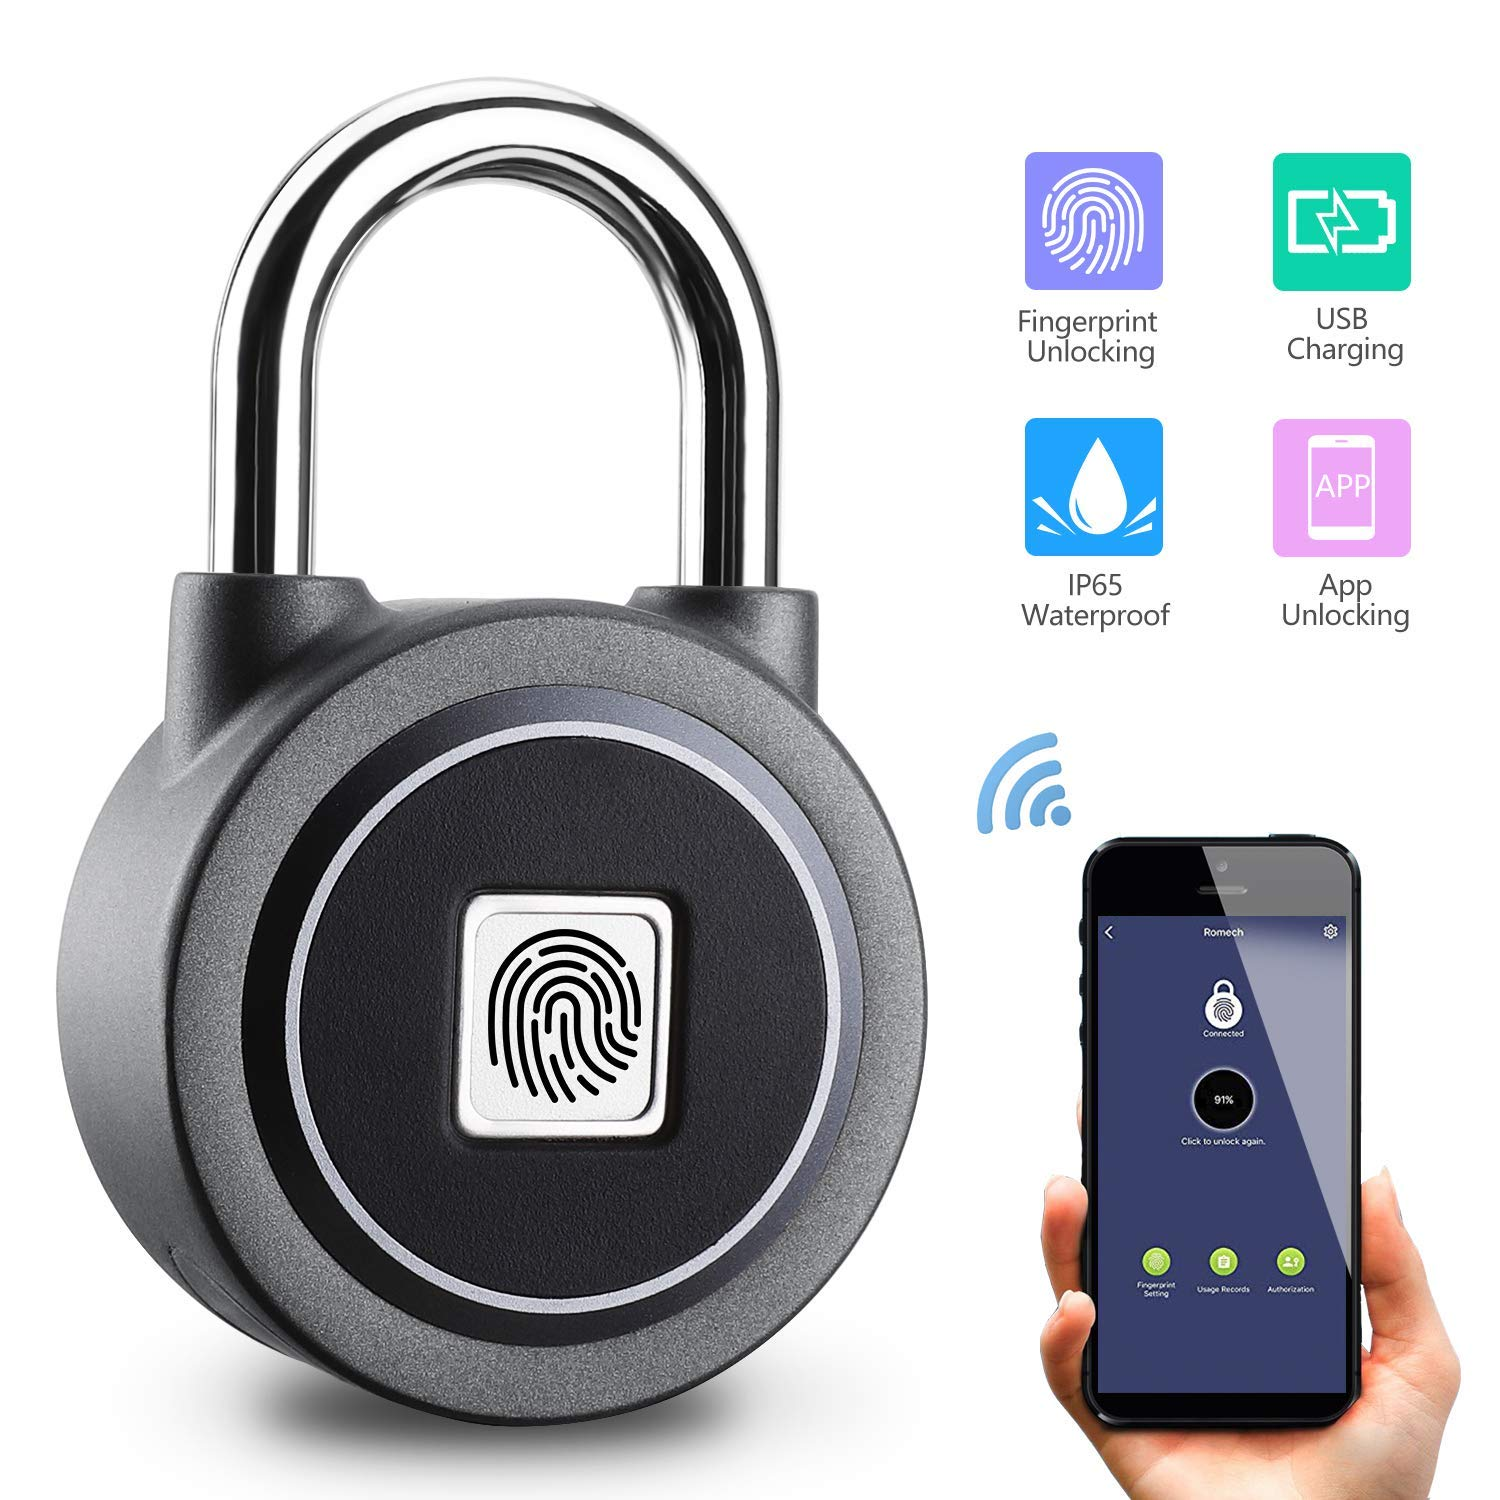 Fingerprint Padlock Thumbprint Bluetooth Lock USB Rechargeable IP65 Waterproof Ideal for Locker, Handbags, Golf Bags, Wardrobes, Gym, Door, Luggage, Suitcase, Backpack, Office, Android/iOS by OMaggie